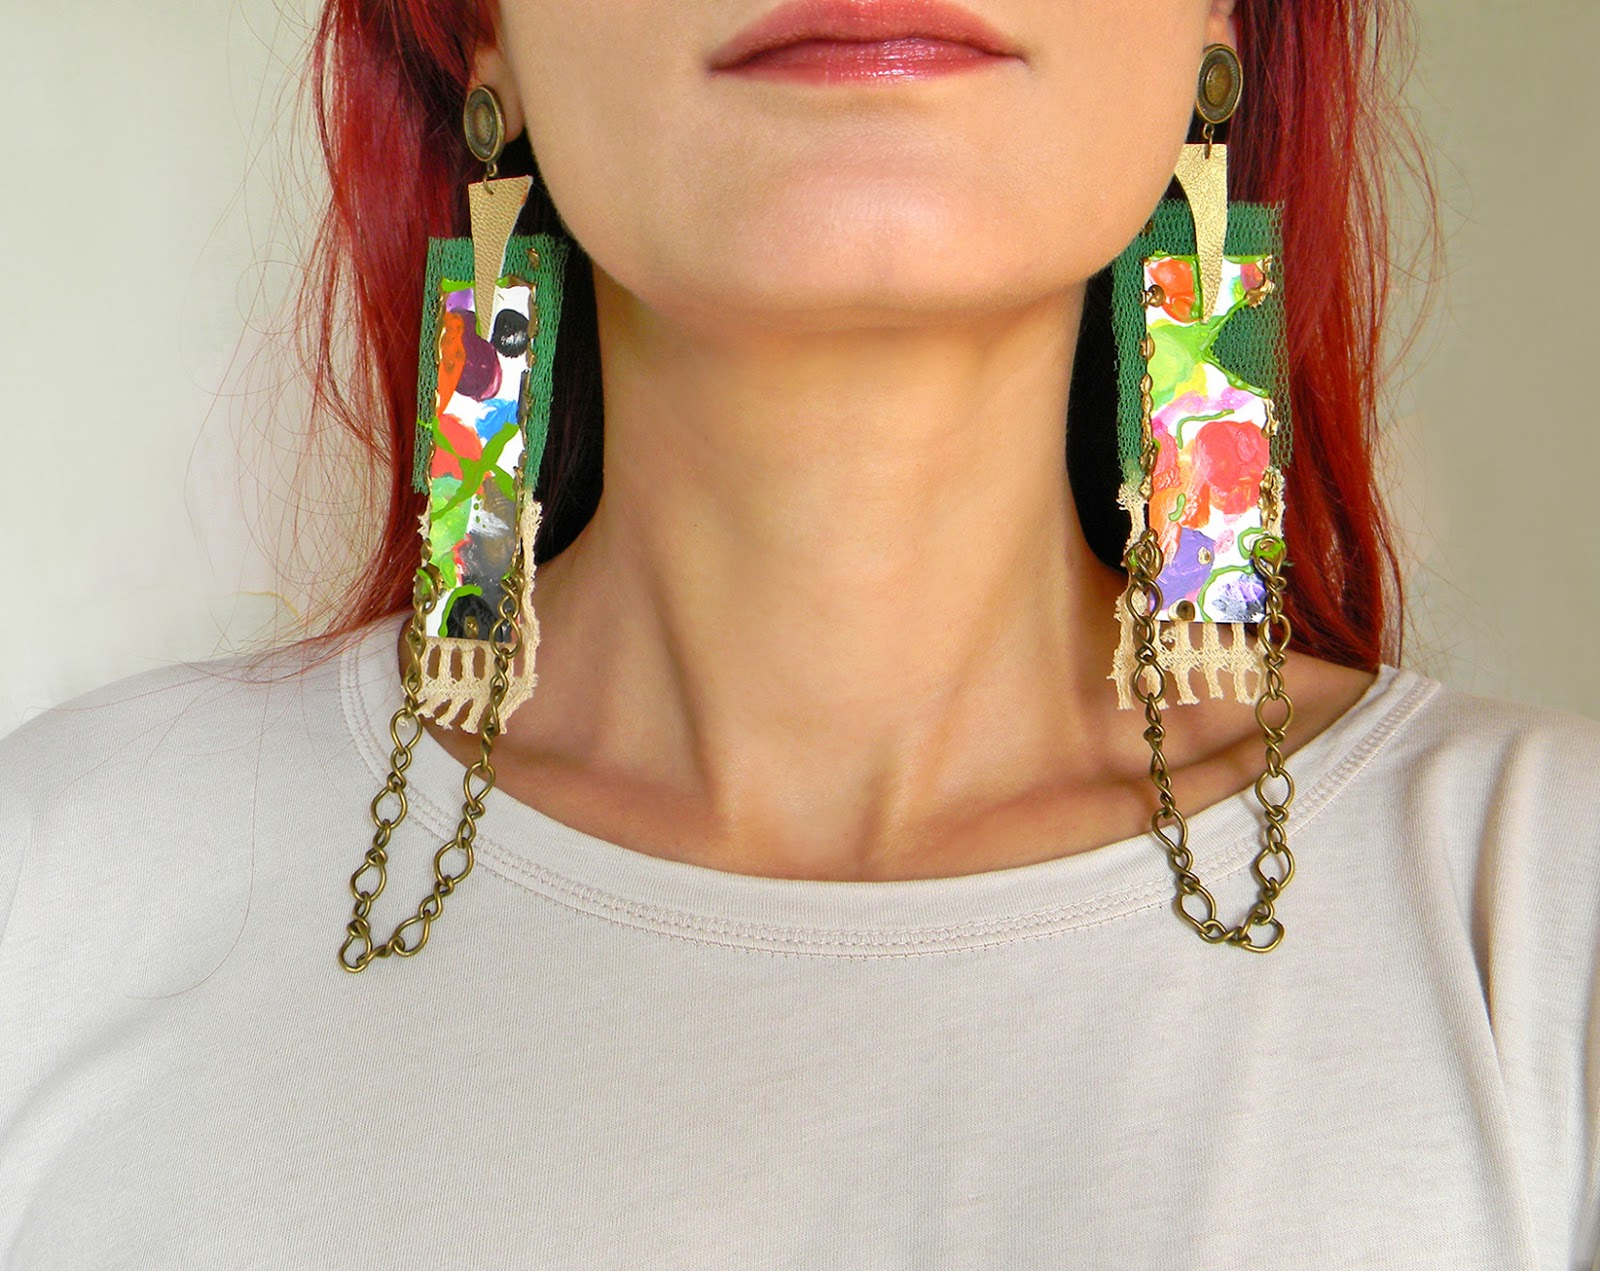 Oversized Hand Painted Earrings with Paper, Leather and Dangle Chain Applique